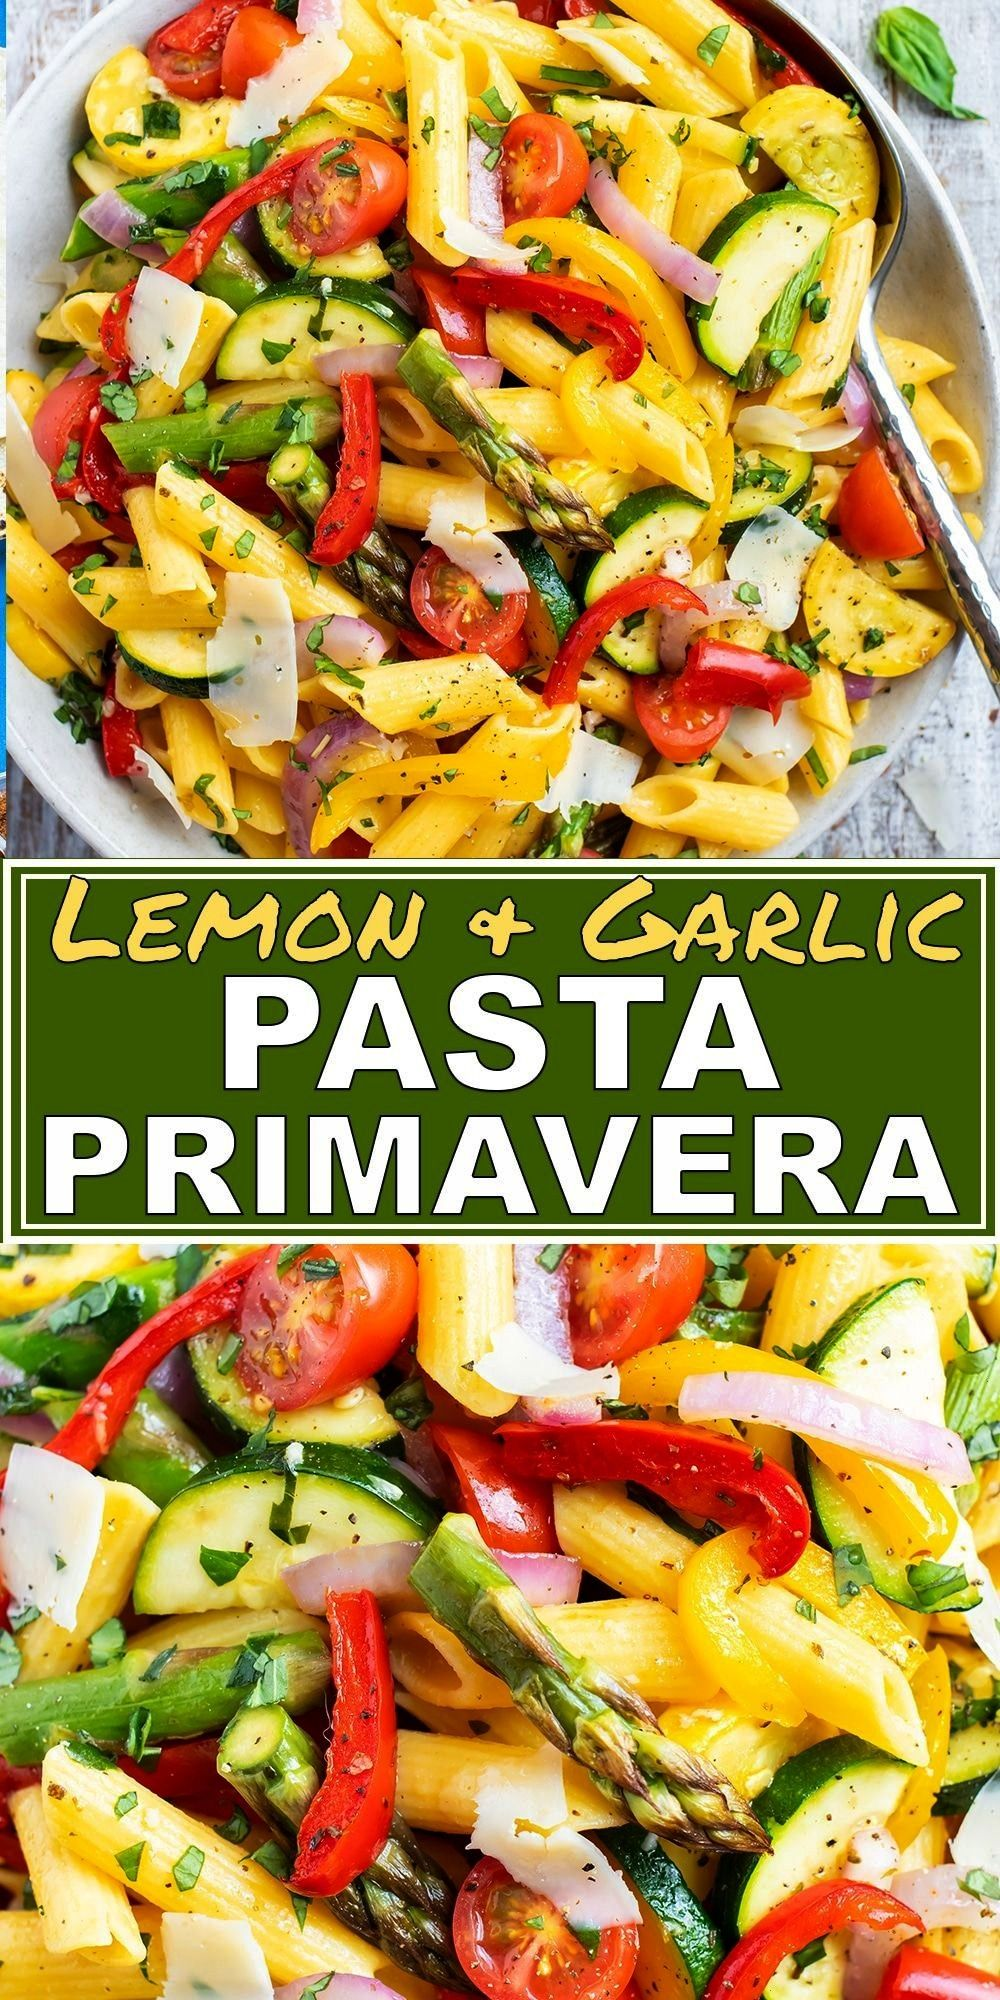 Primavera is a healthy, quick, and easy vegetable pasta recipe that is loaded with roasted asparagu